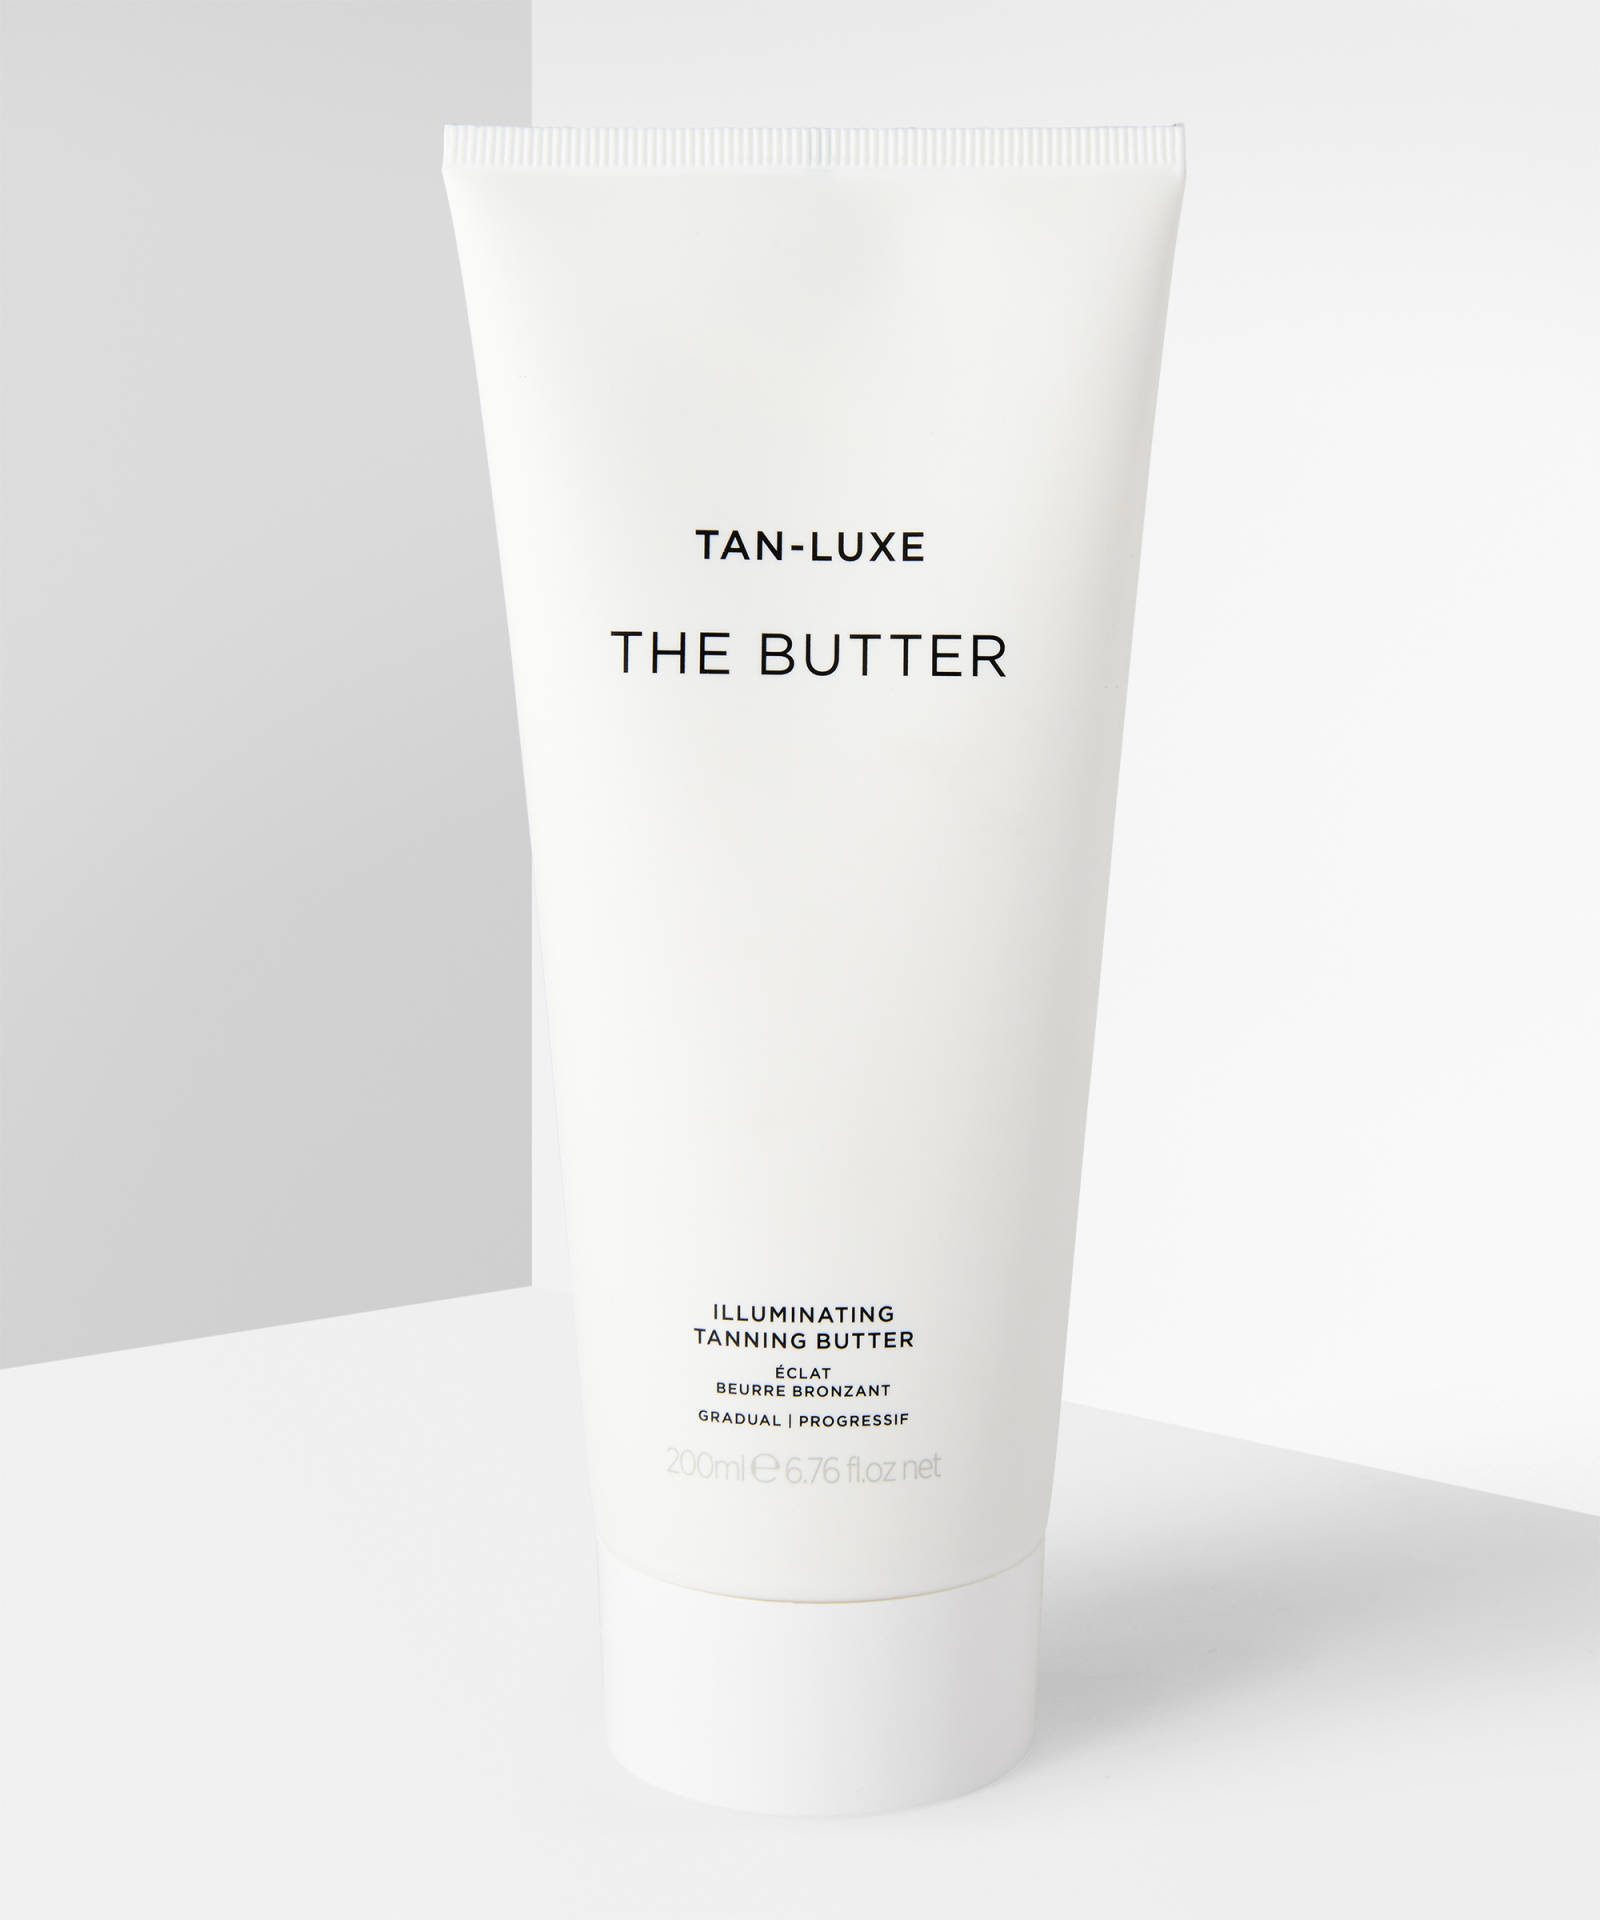 THE BUTTER by Tan-Luxe.